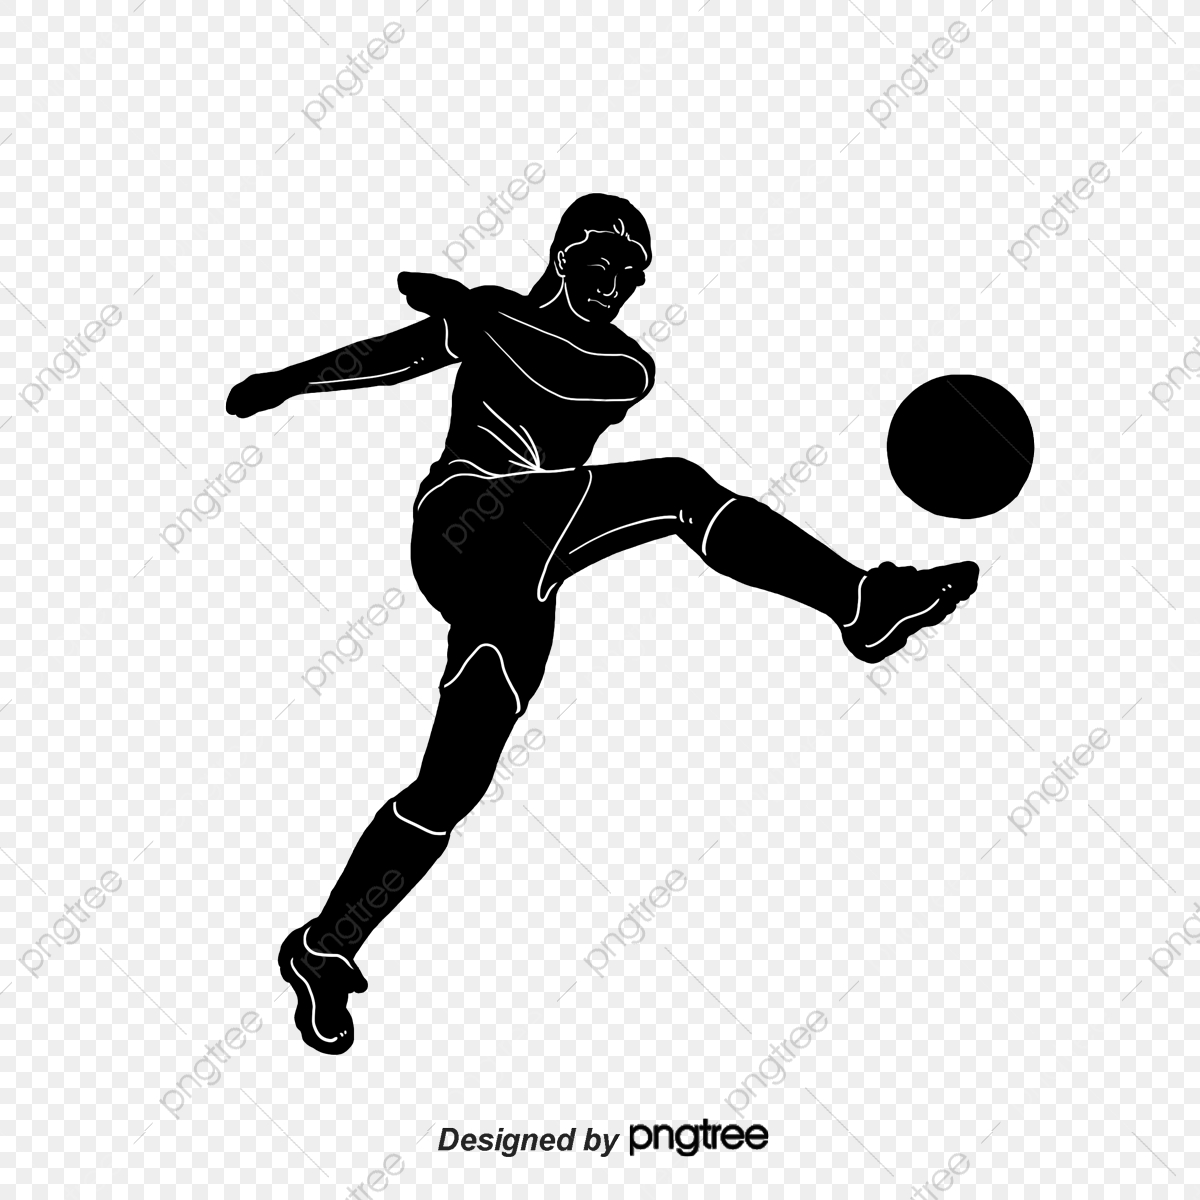 Black And White Silhouette Of Womens Football Cartoon Sports Bodybuilding Silhouette Png Transparent Clipart Image And Psd File For Free Download